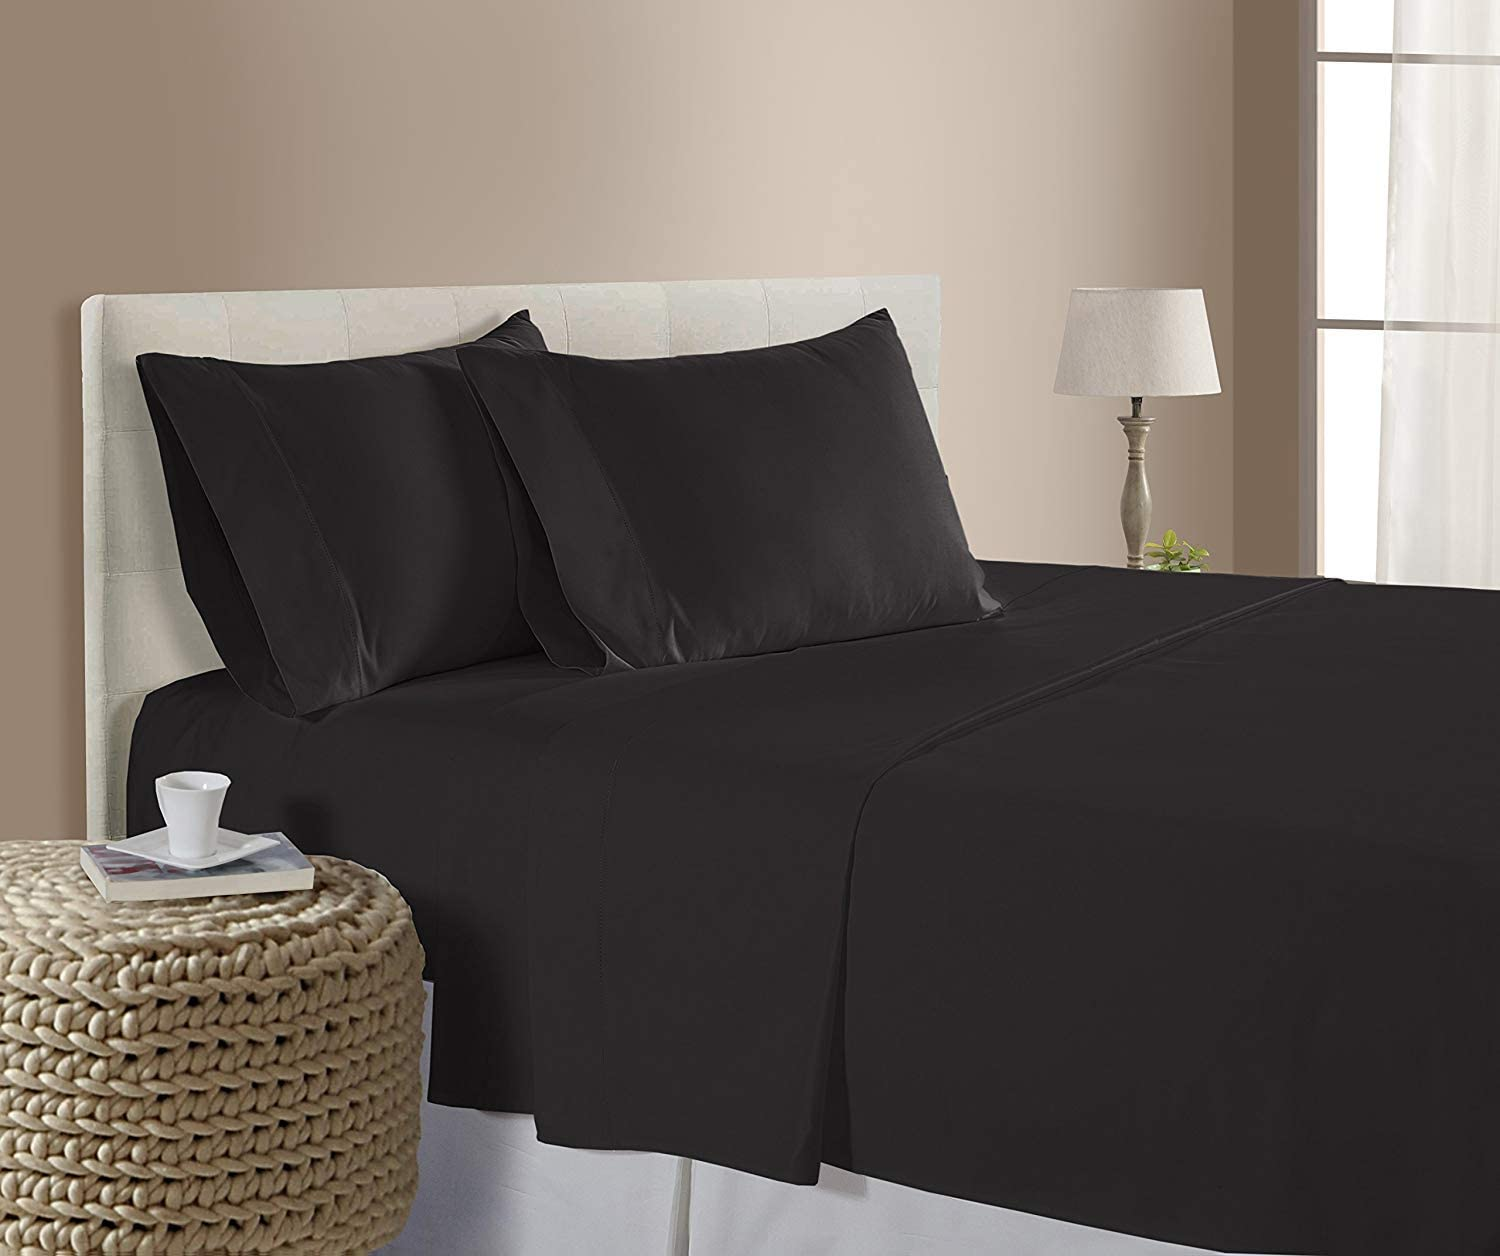 Twin XL Size Sheets Luxury Soft 100% Egyptian Cotton Sheet Set for Twin XL Size (39x80) Mattress Dark Grey Color 550 Thread Count Deep Pocket Fits 14-16 Inches (Pattern : Solid)